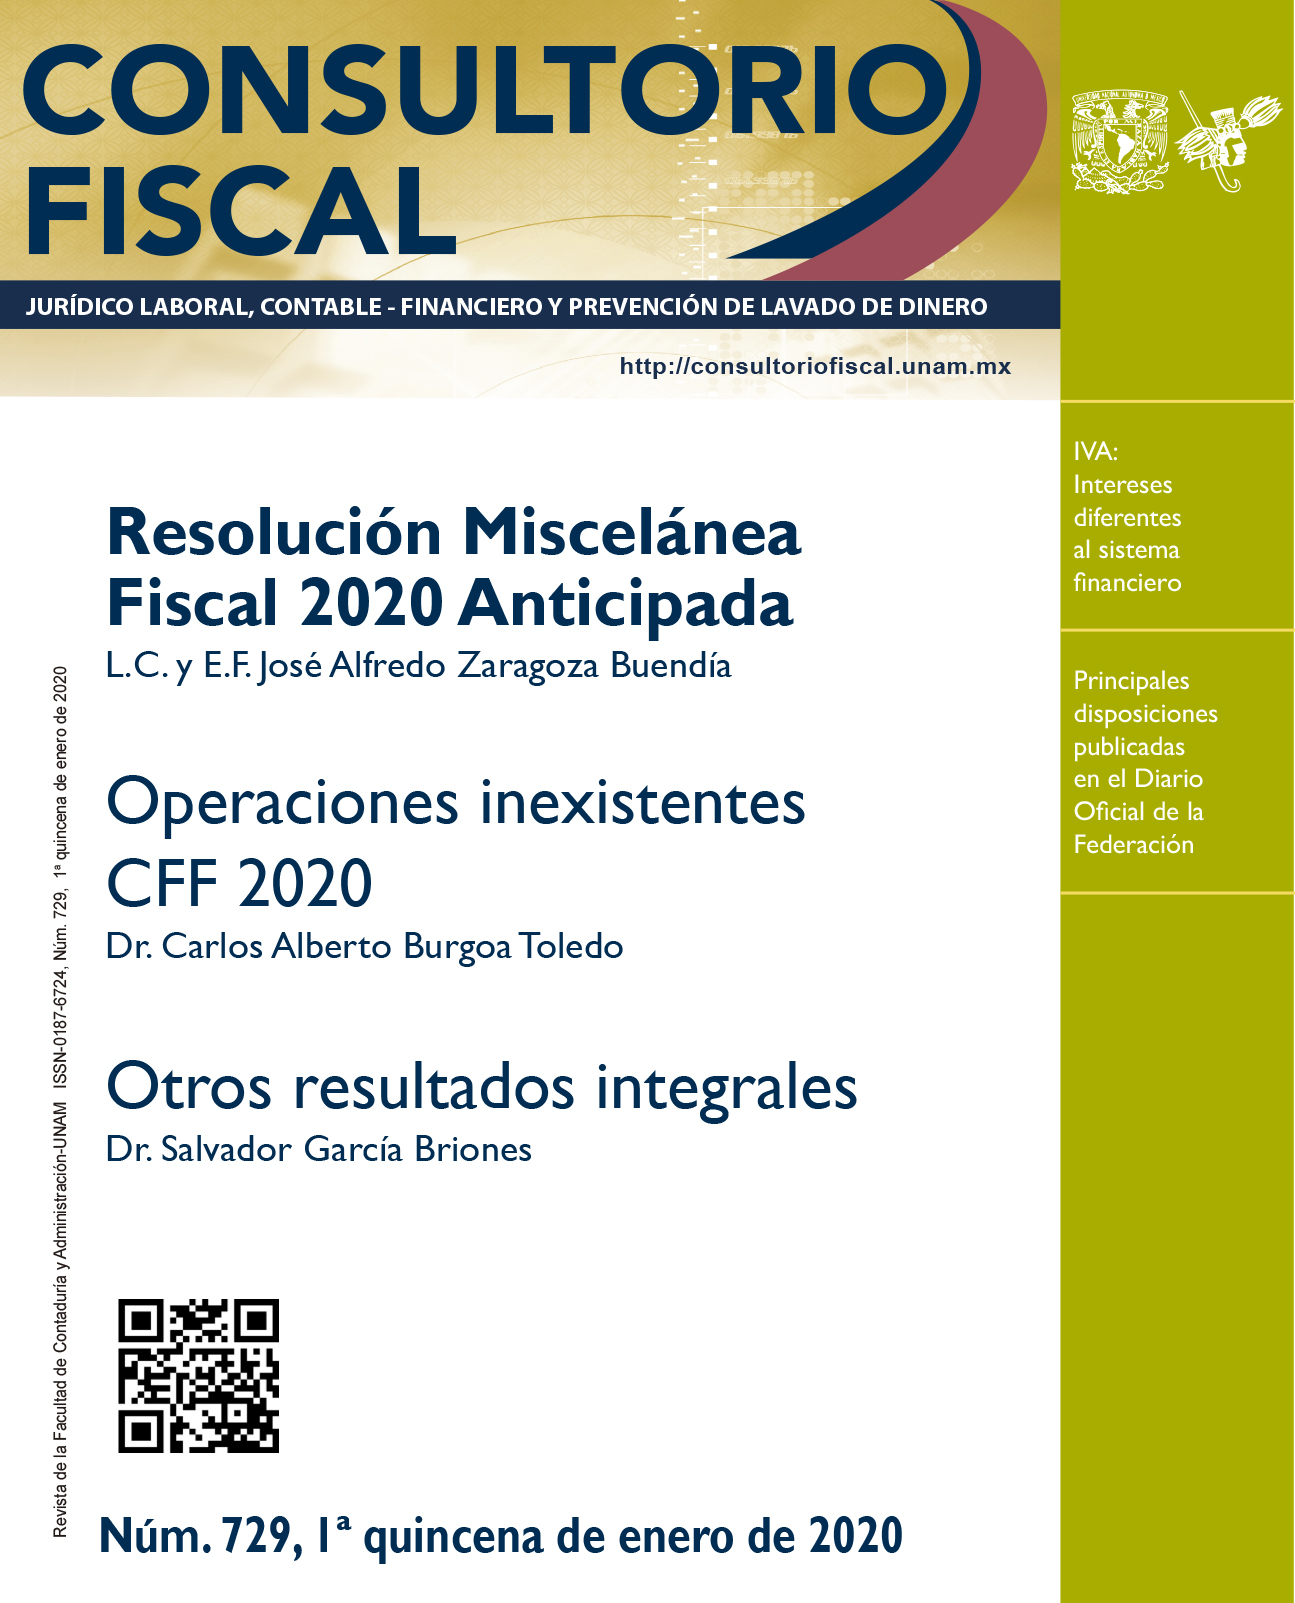 Resolución Miscelánea Fiscal 2020 Anticipada